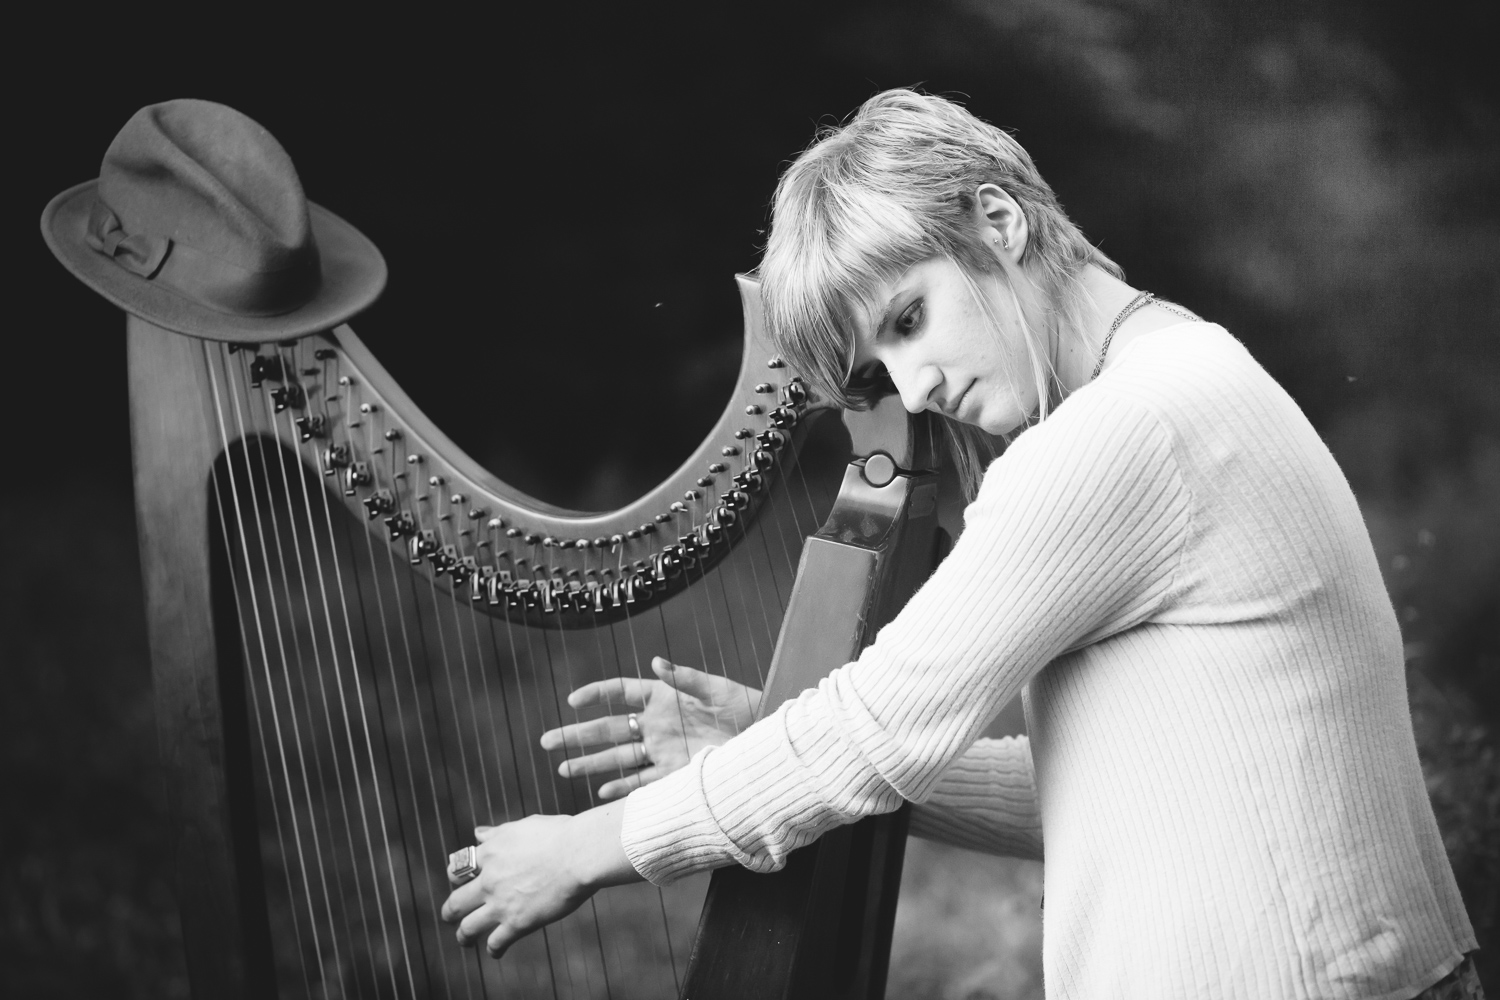 Central New Jersey Photographer Styled Photo Session with Harpists-7.jpg